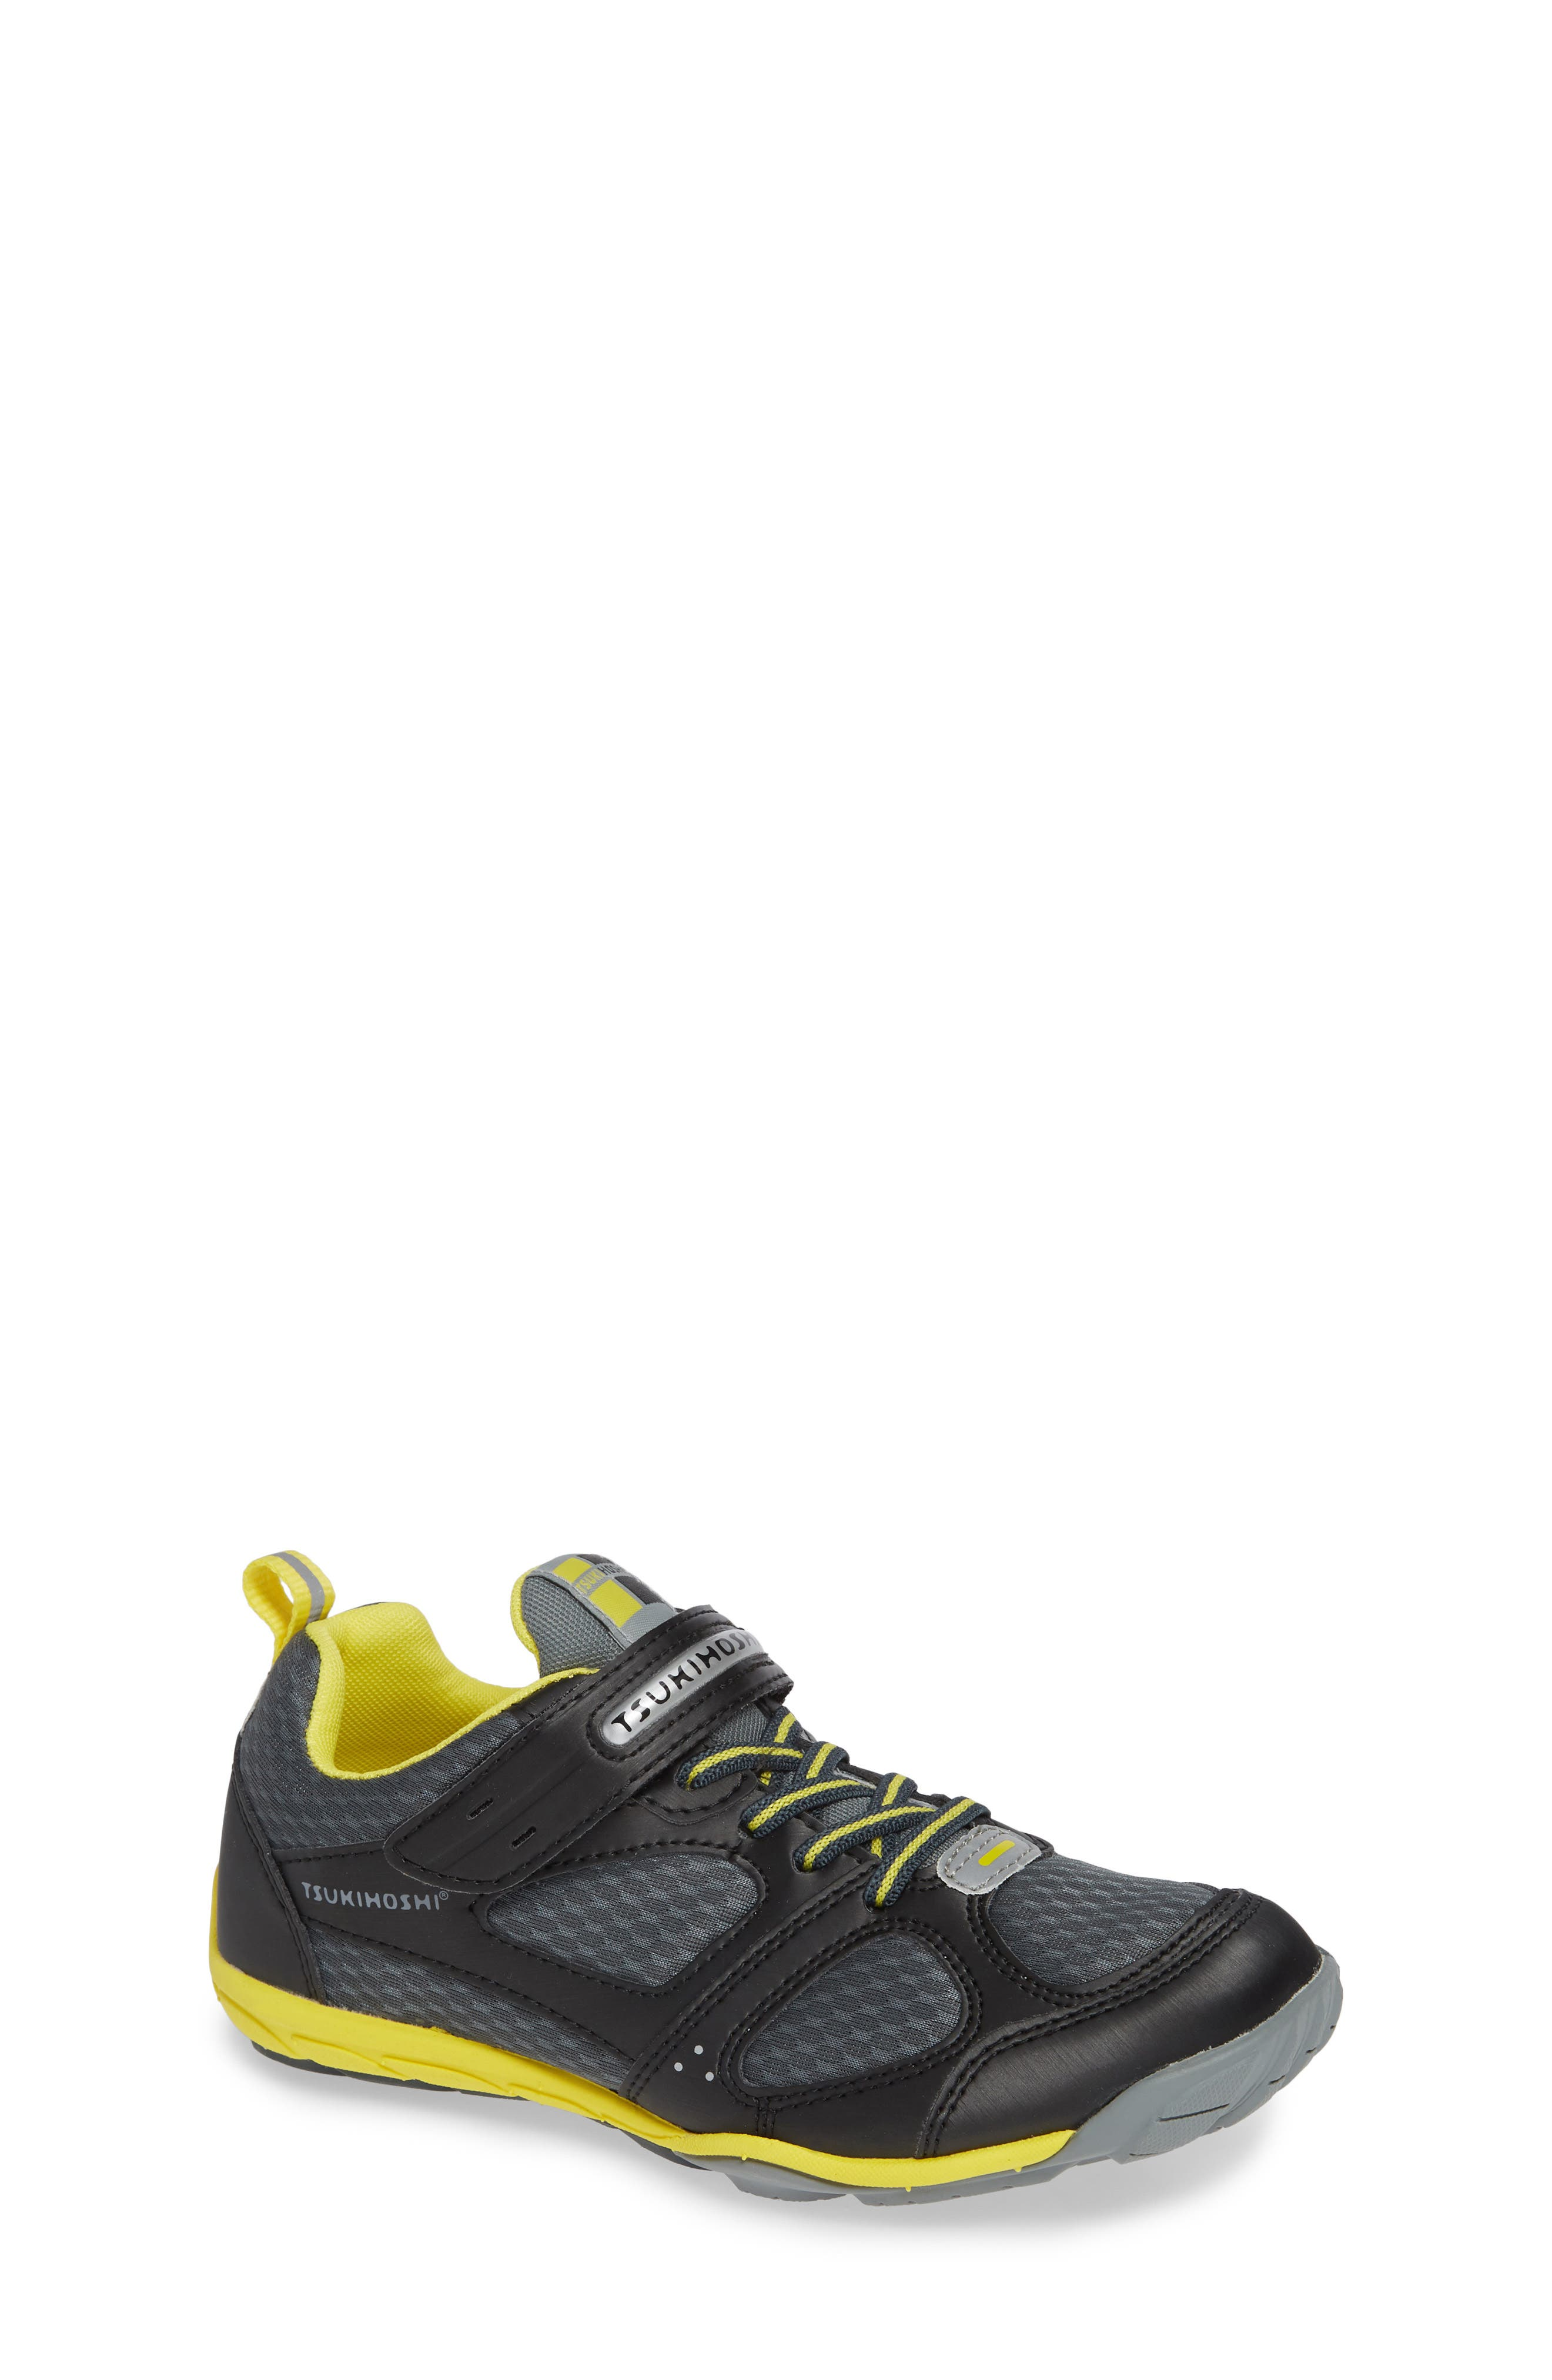 TSUKIHOSHI Mako Washable Sneaker, Main, color, BLACK/ YELLOW